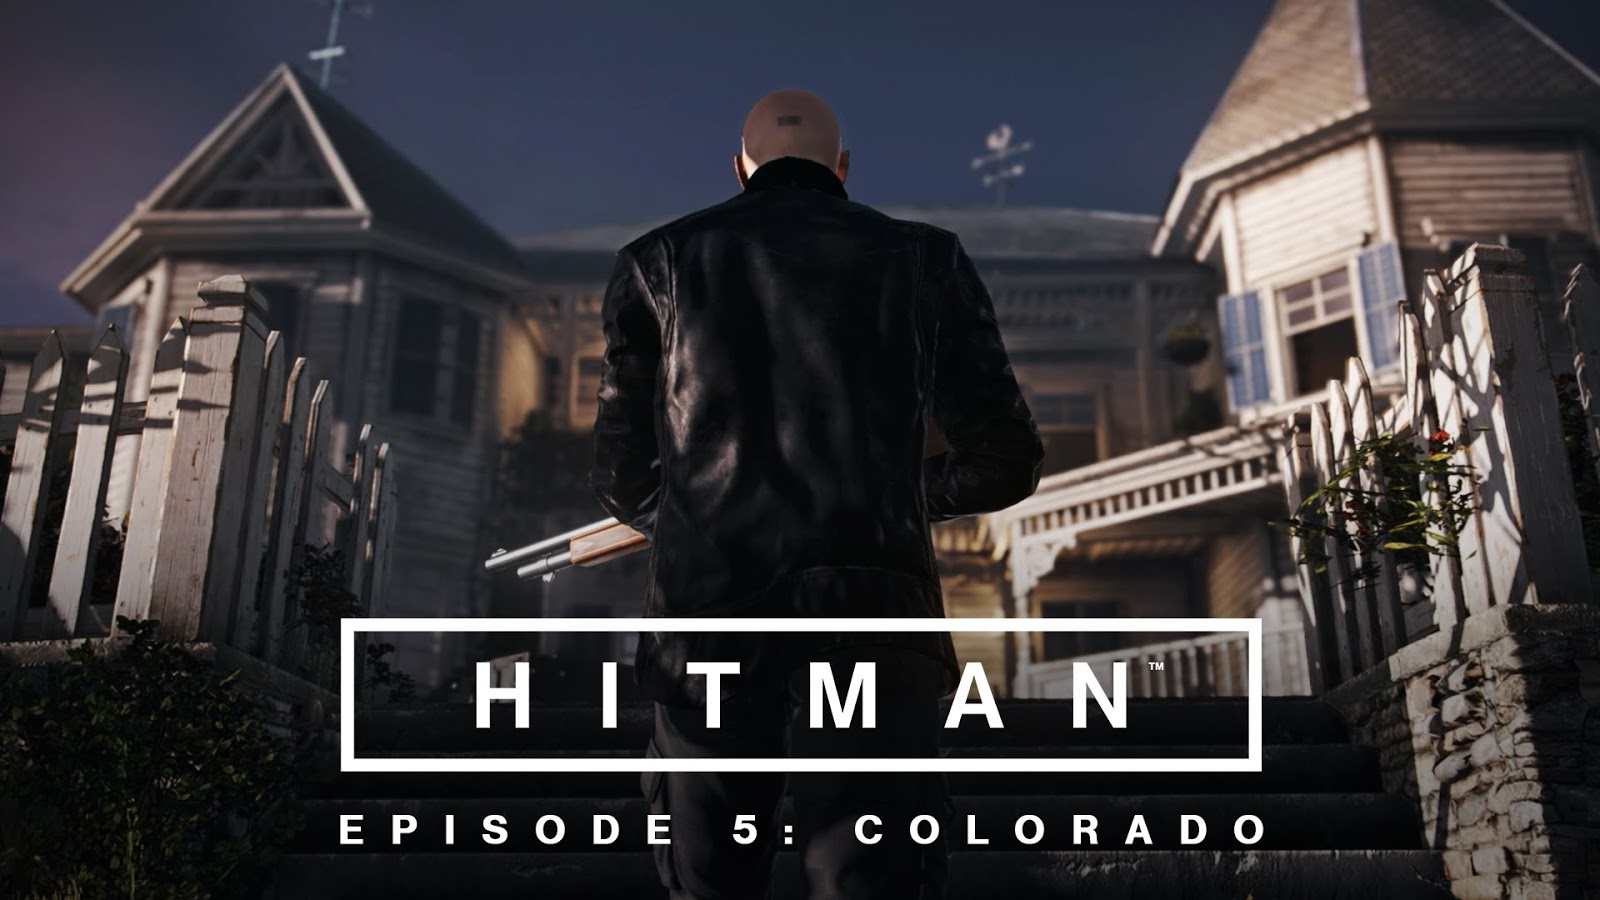 The trailer for Hitman's next episode has leaked